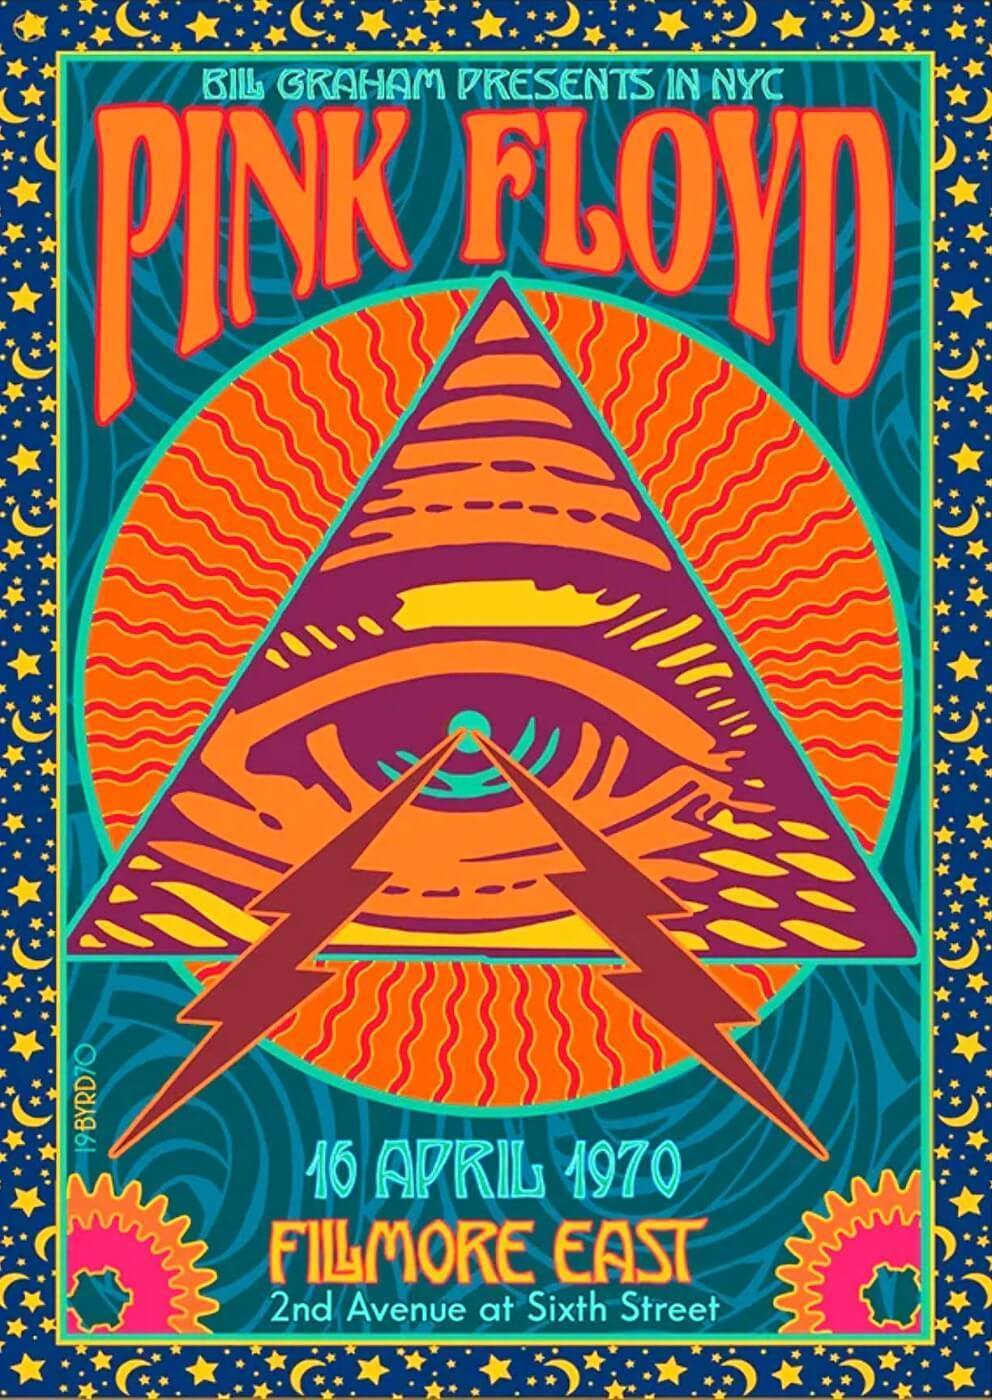 Pink Floyd Live At Fillmore East 1970 Music Concert Poster Tallenge Classic Rock Music Collection Posters By Kenneth Buy Posters Frames Canvas Digital Art Prints Small Compact Medium And Large Variants